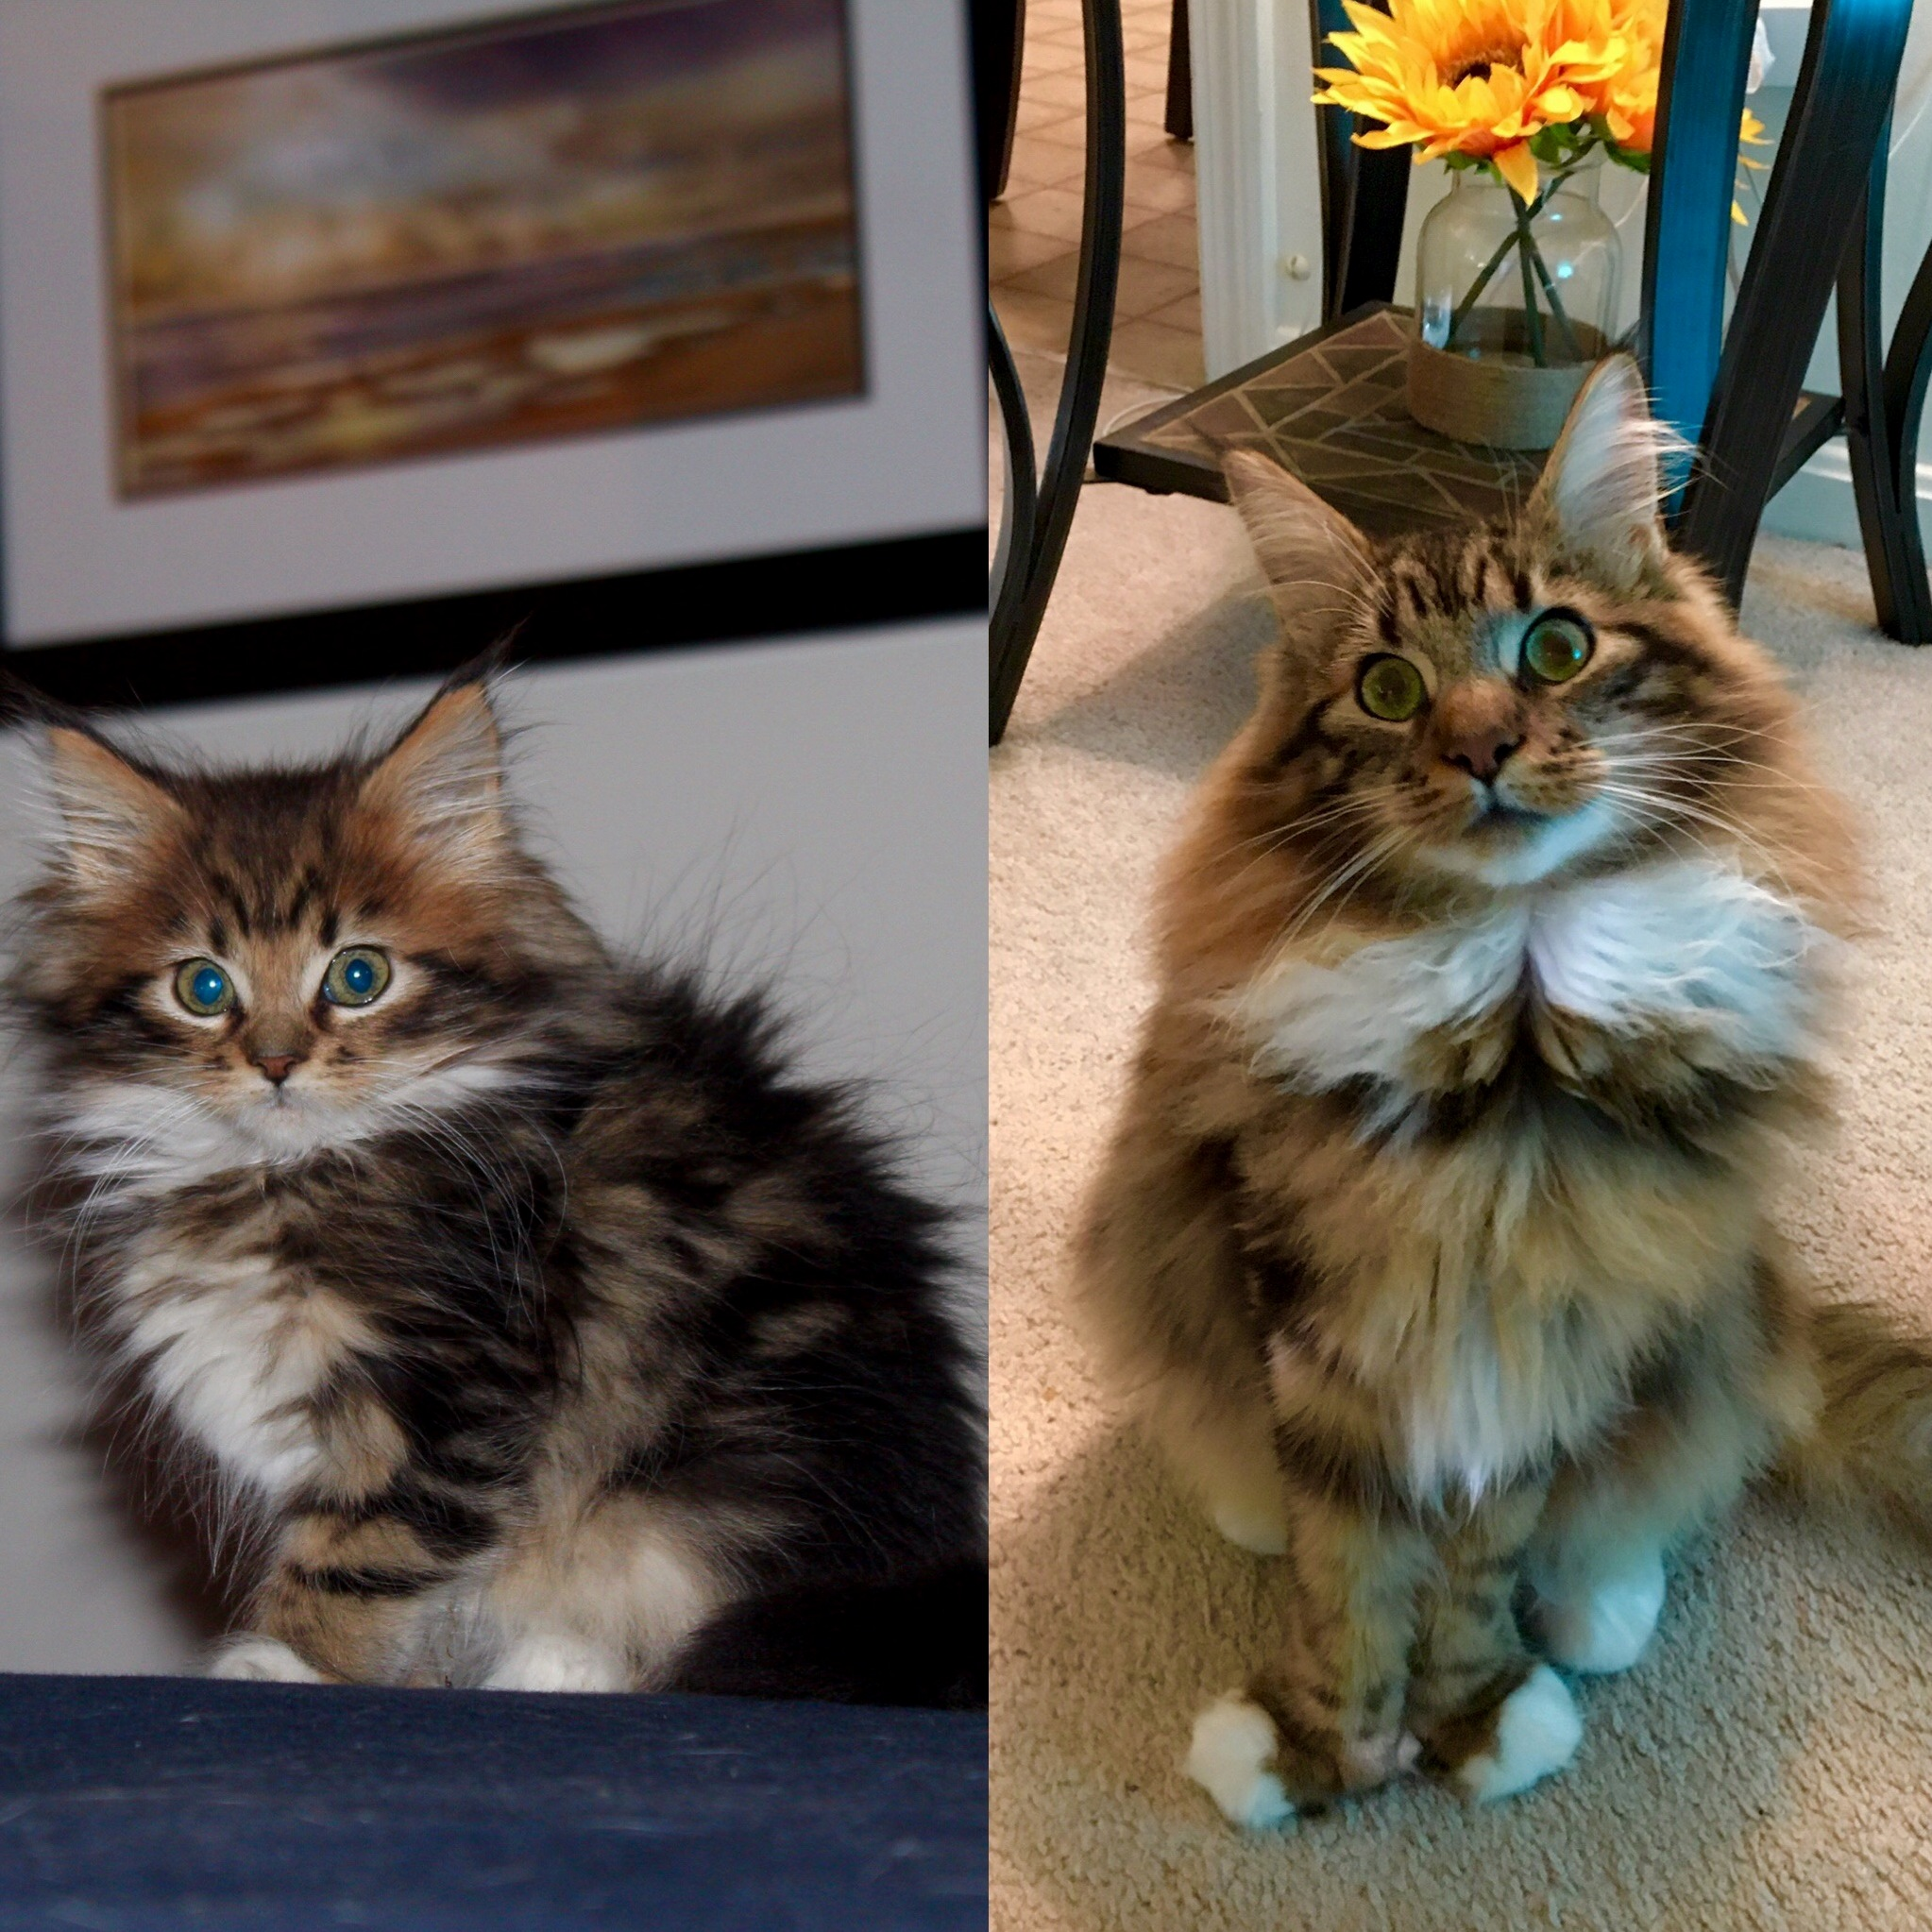 Ruckusthecooncat instagram at 10 months. crazy how fast they grow up.